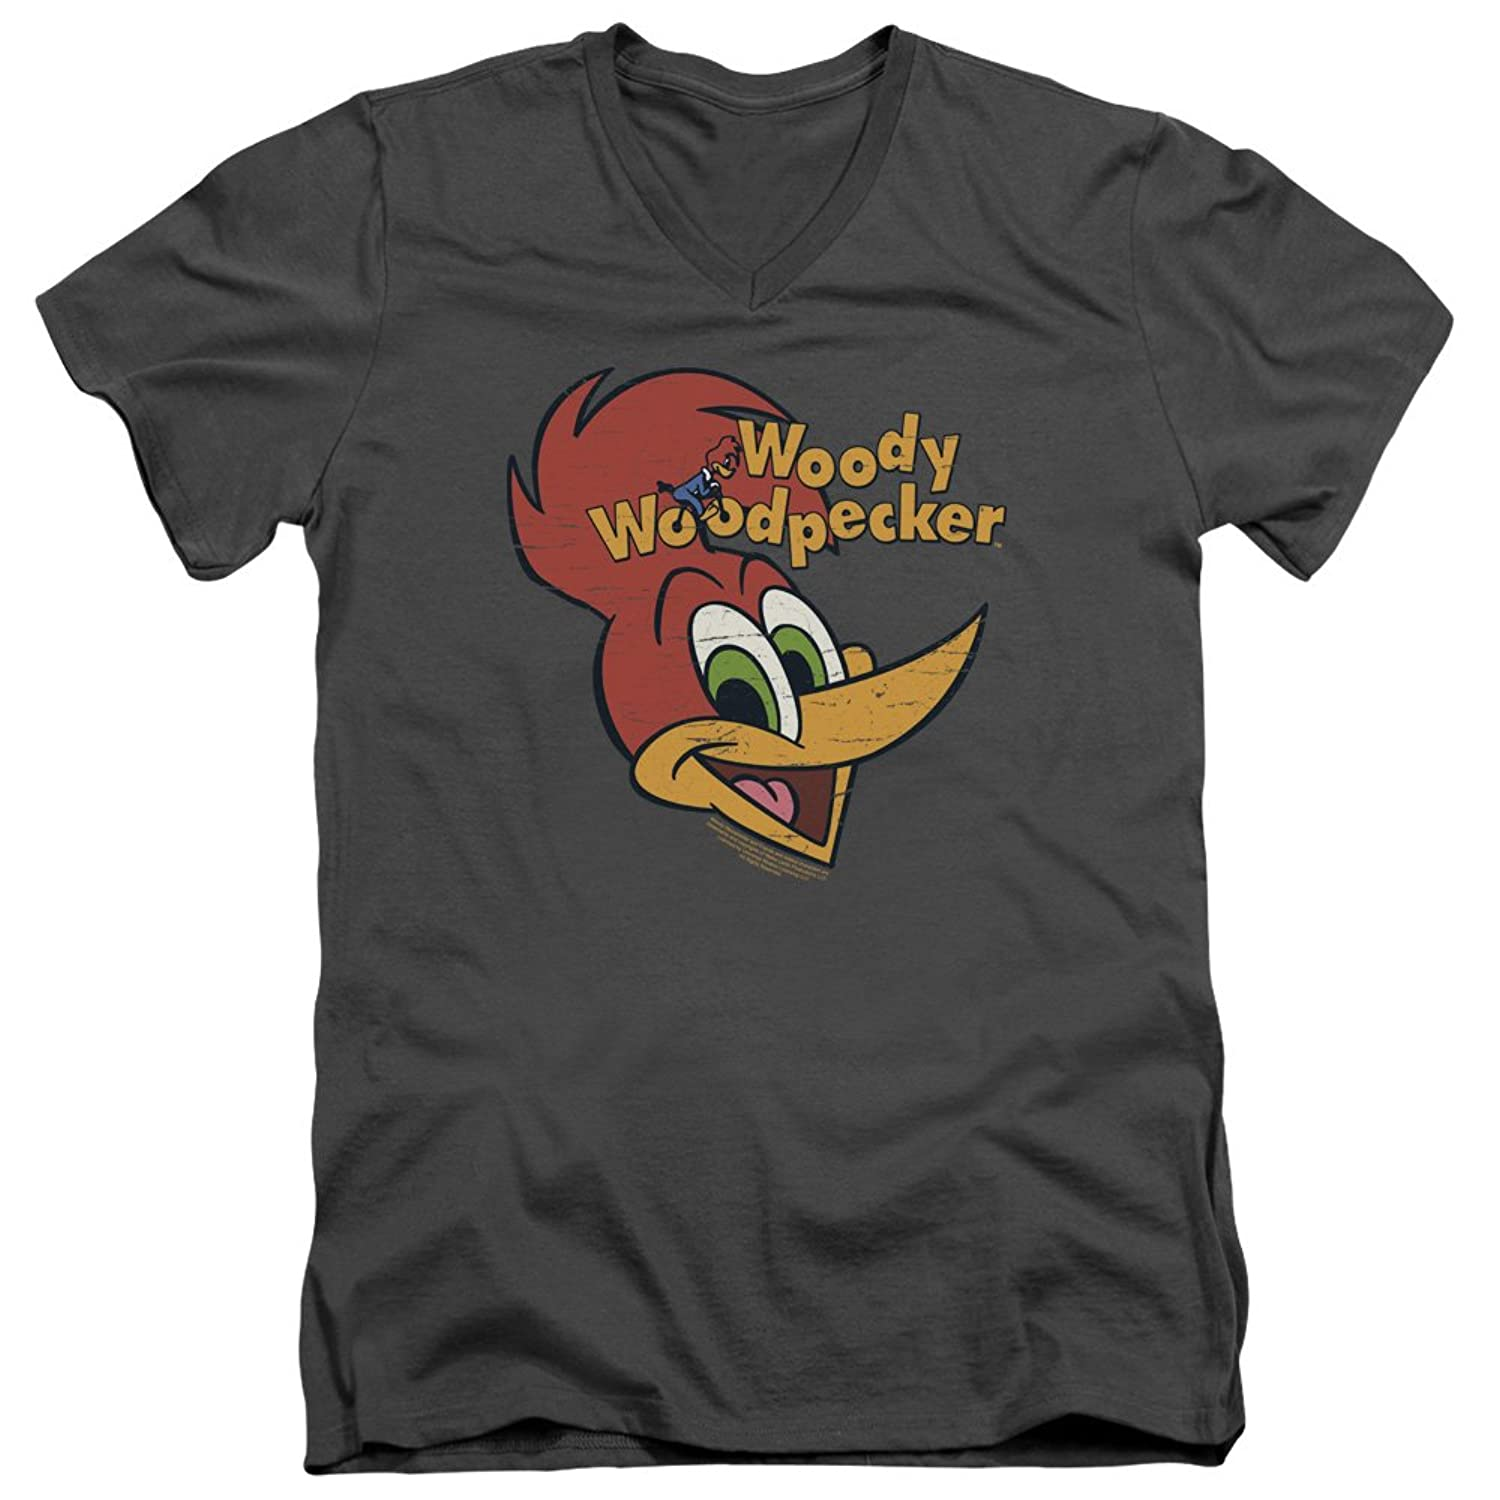 Woody Woodpecker 1940s Cartoon Character Bicycle Logo Adult V-Neck T-Shirt Tee